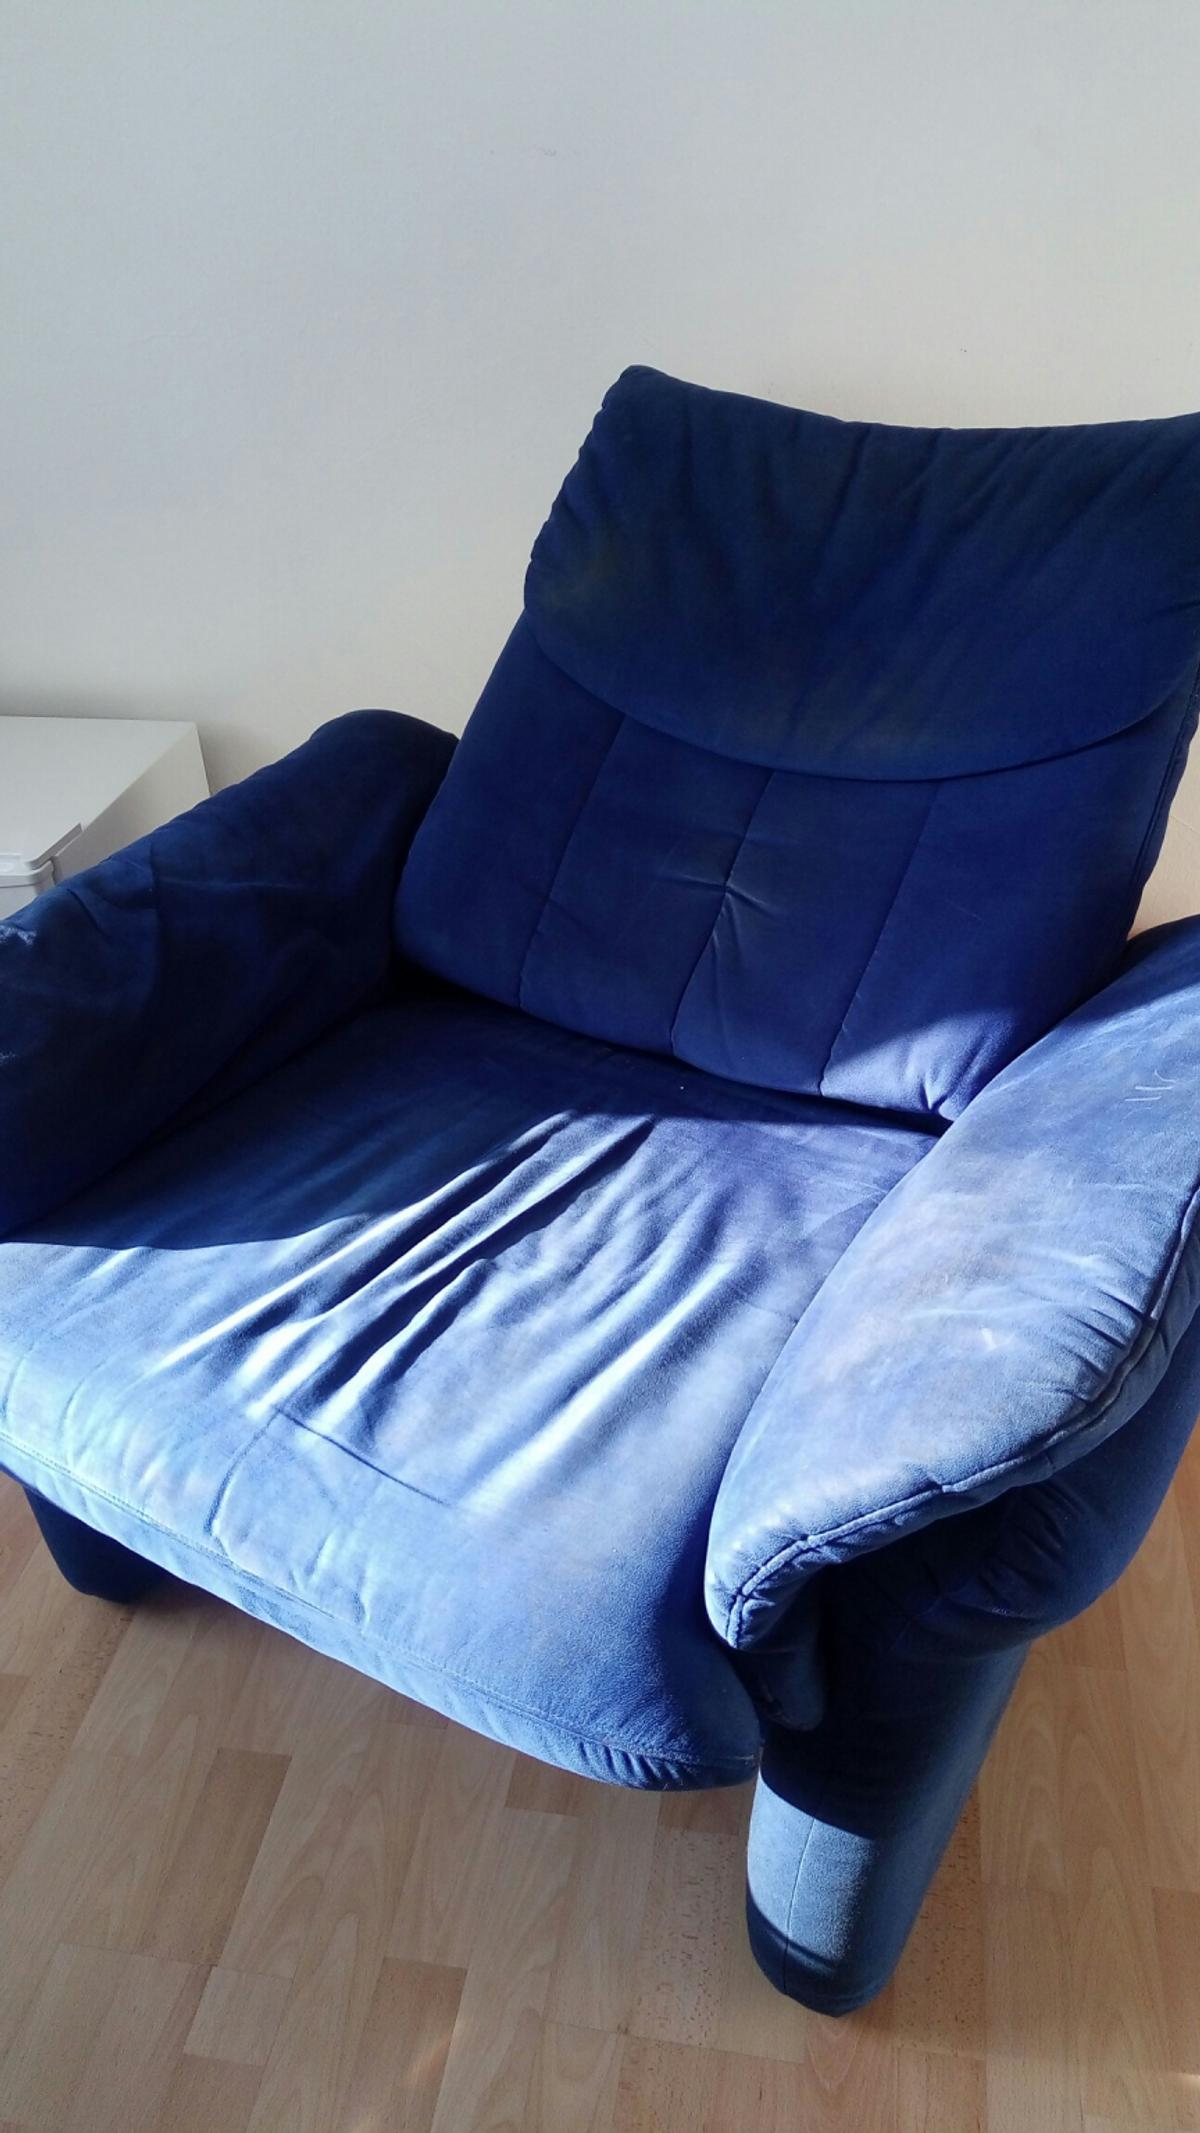 Sessel Blau Relax Sessel In 86825 Bad Wörishofen For €5.00 For Sale | Shpock